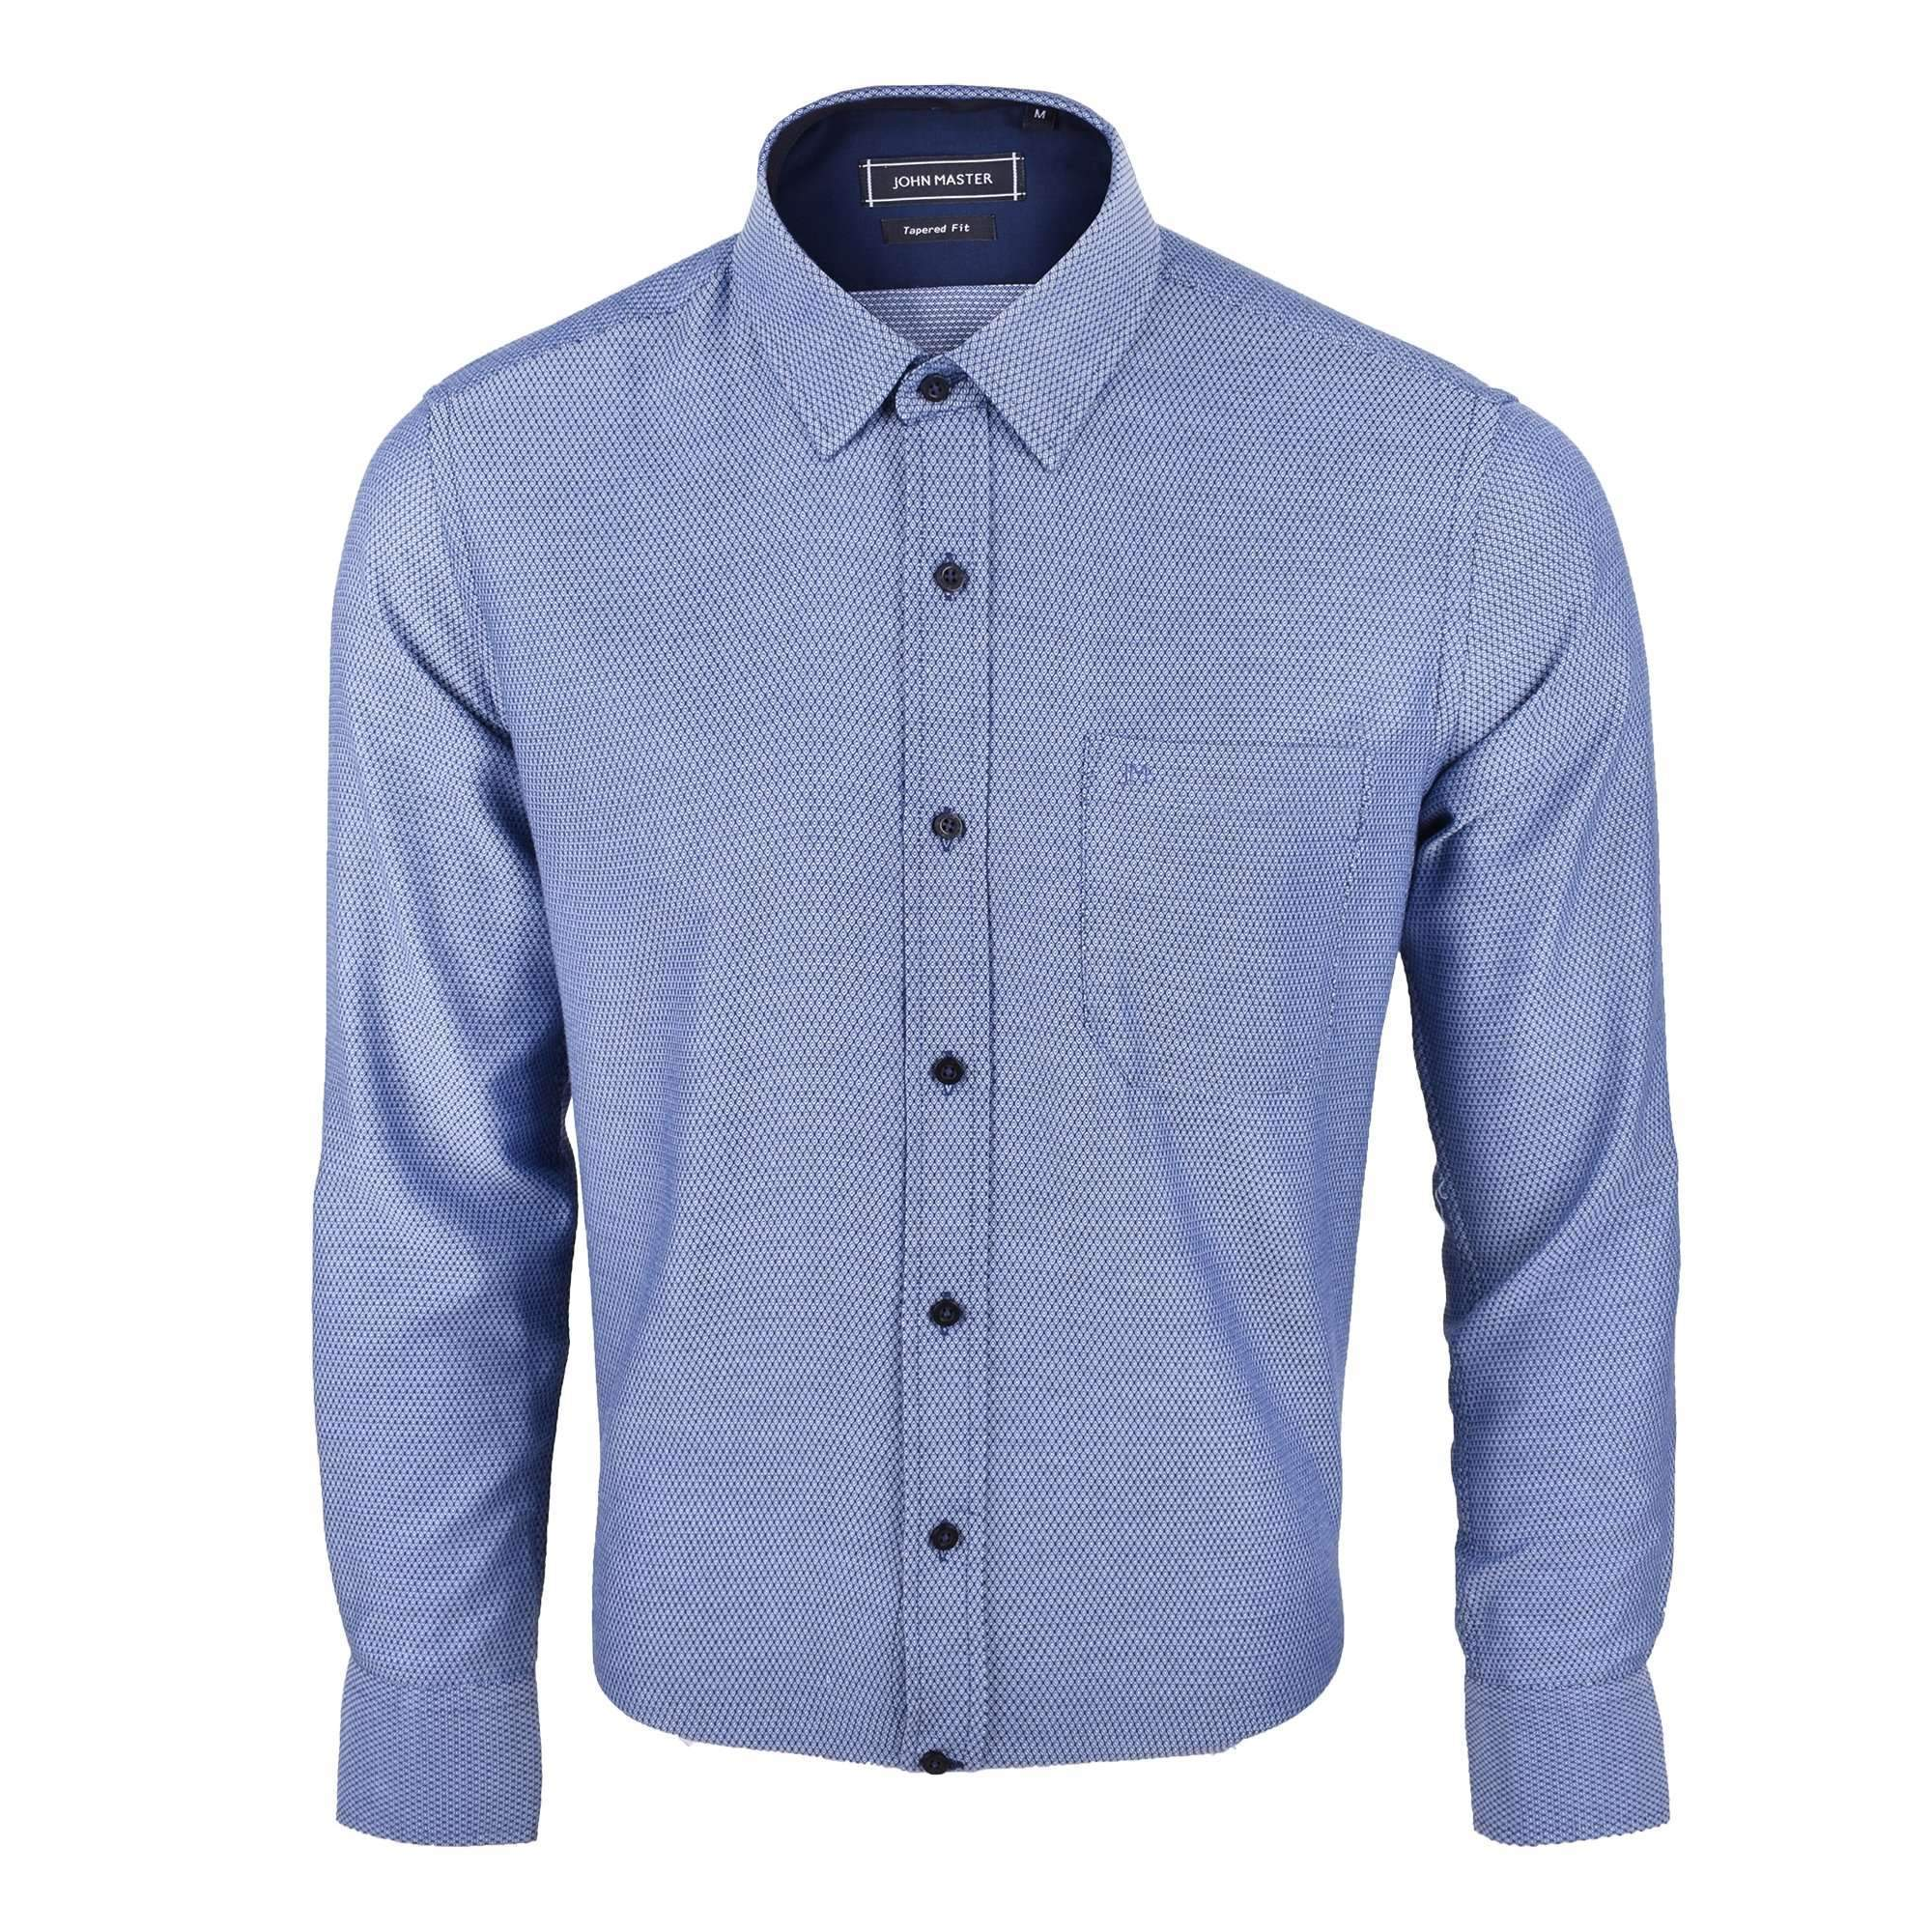 John Master Business Tapered Fit Long Sleeves Shirt - Navy 7087308 : Buy John Master online at CMG.MY